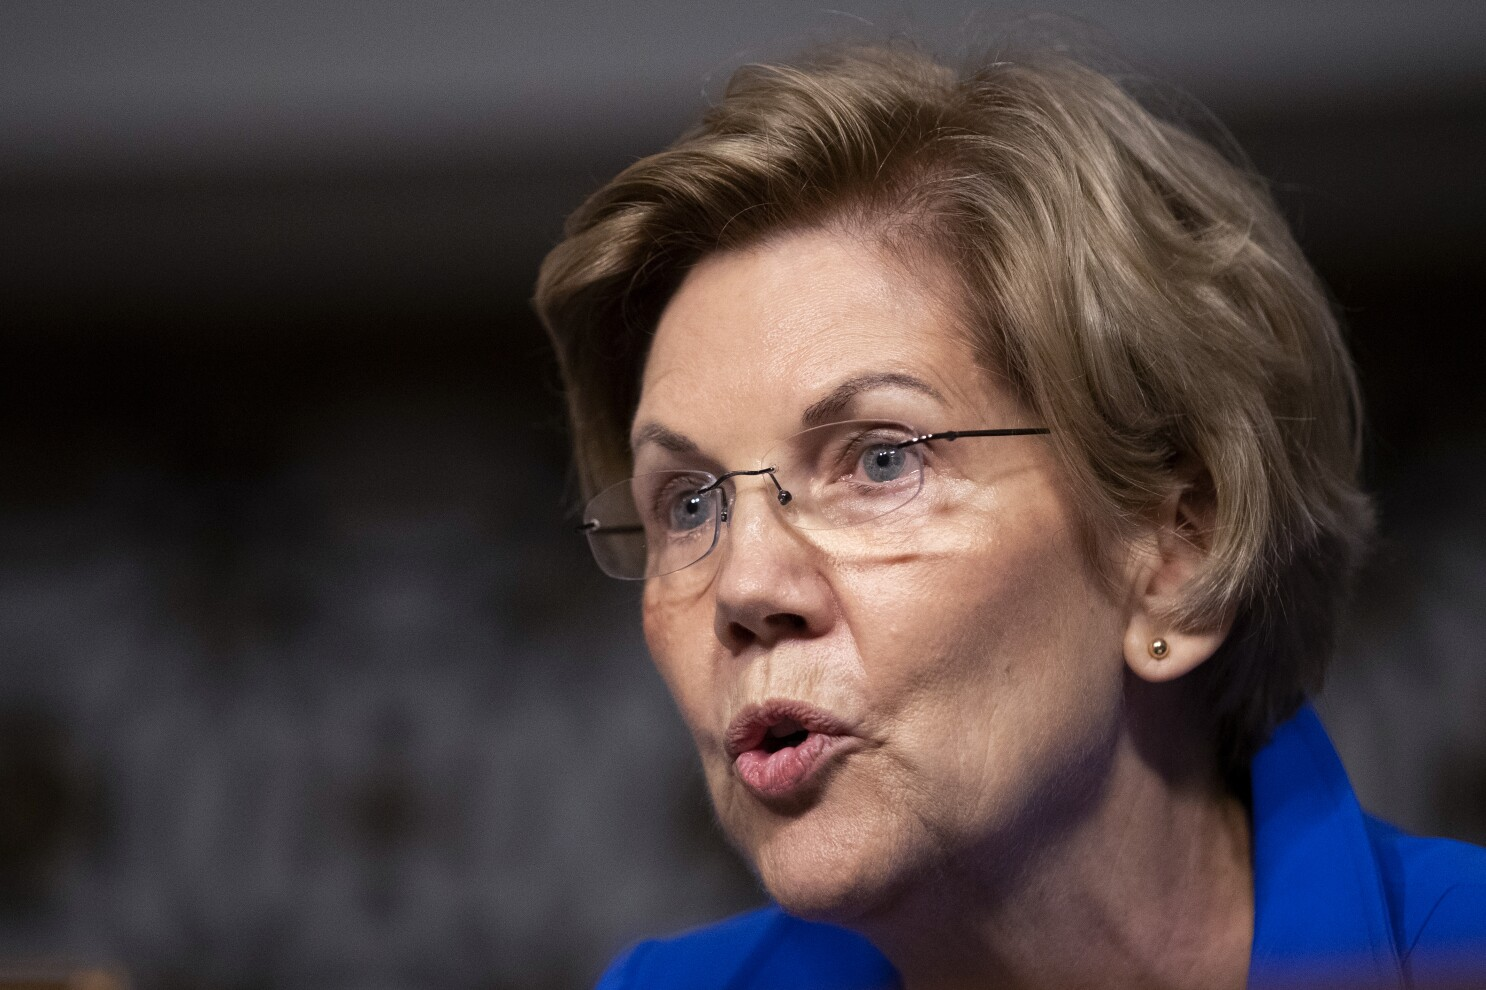 Elizabeth Warren pitches private equity regulations, taking aim at 'legalized looting' - Los Angeles Times